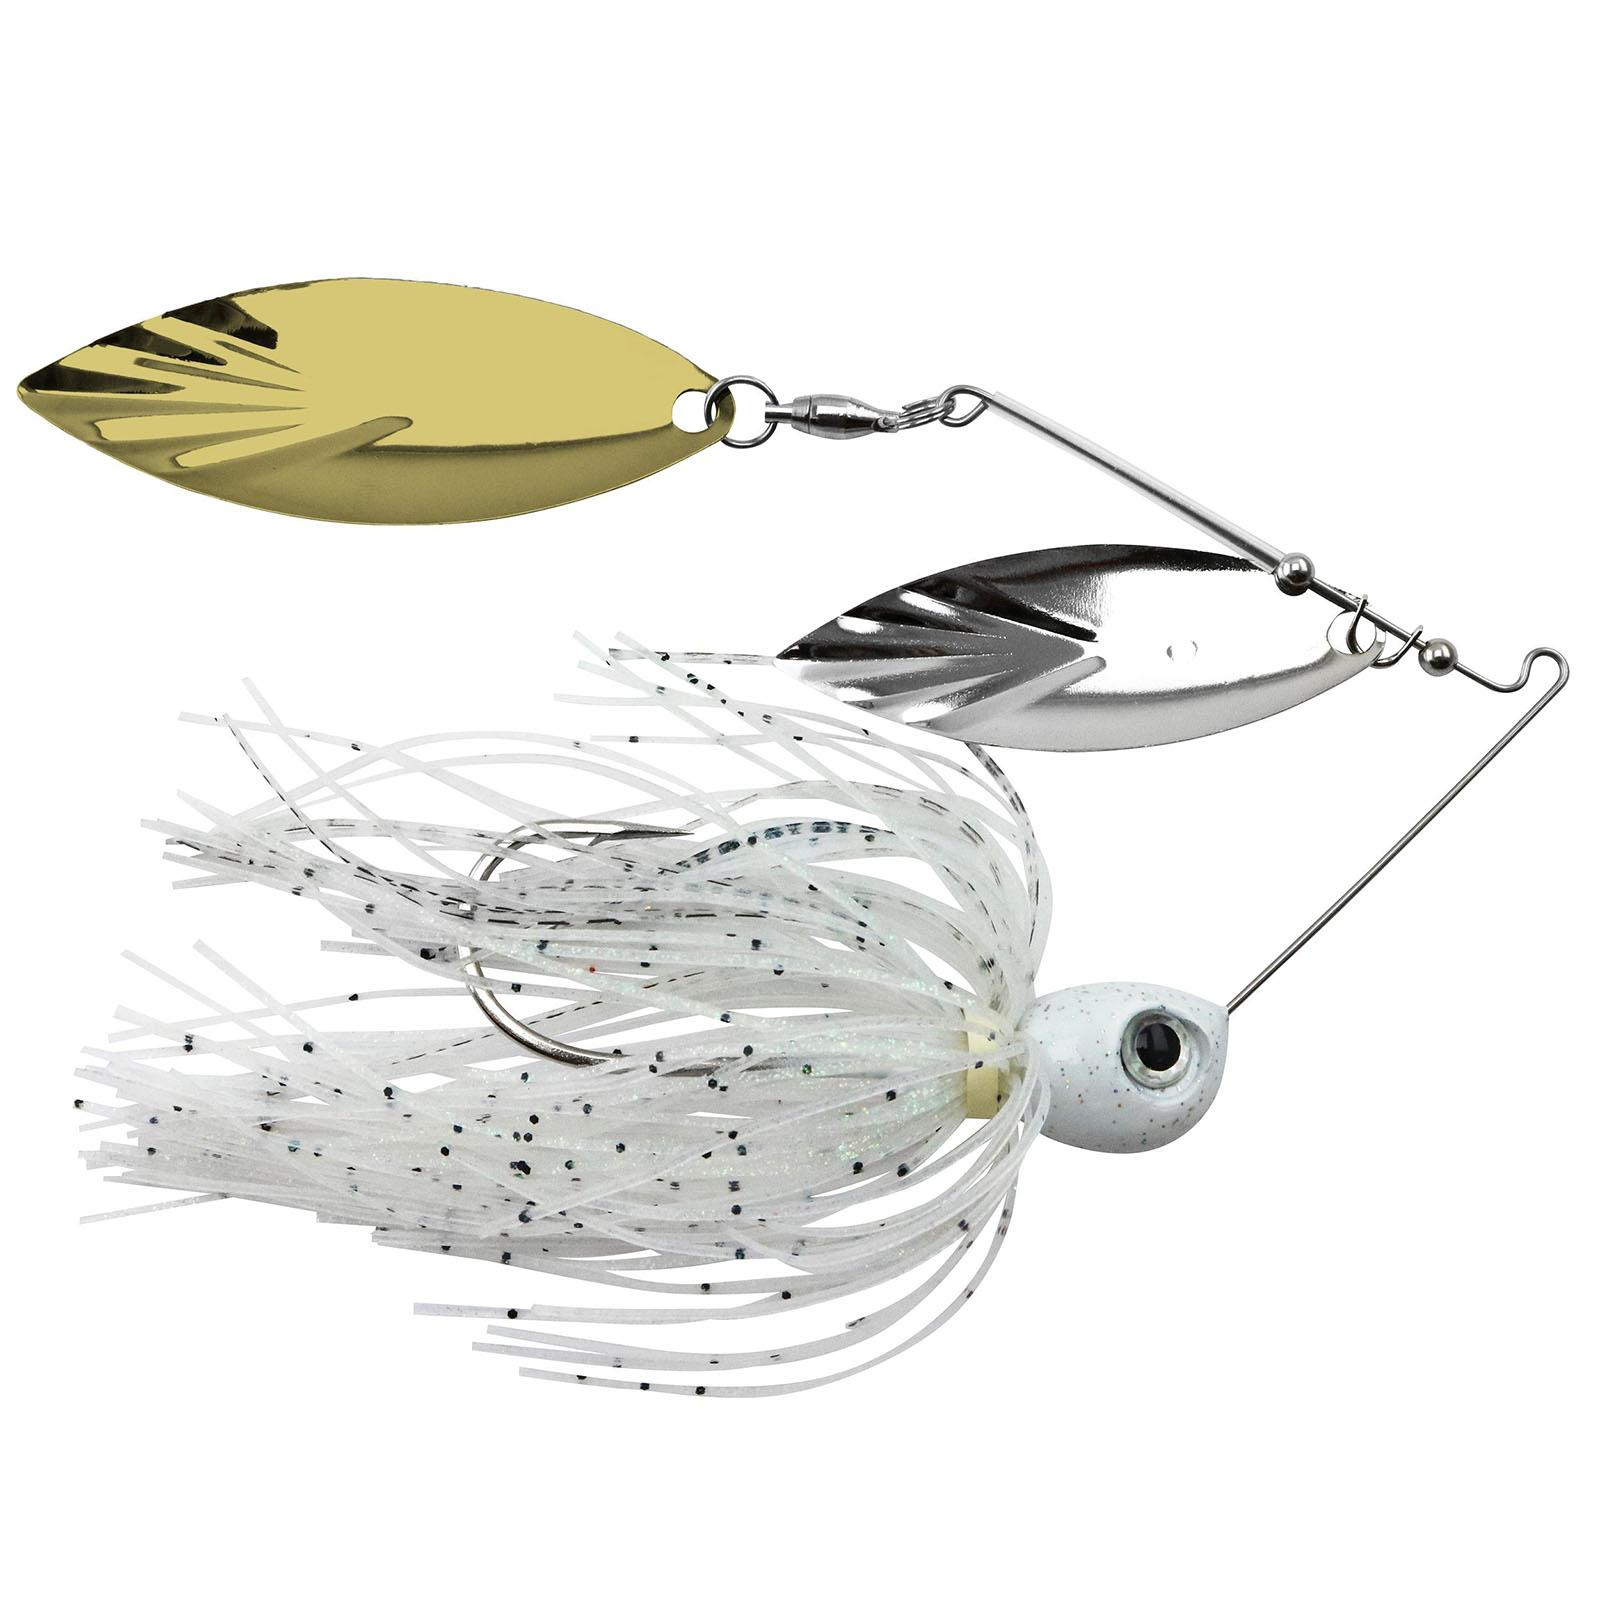 Accent River Special Double Willow Spinnerbait Color Nickel/Gold Blades - Crystal White Shad Skirt Weight 1/4 oz thumbnail